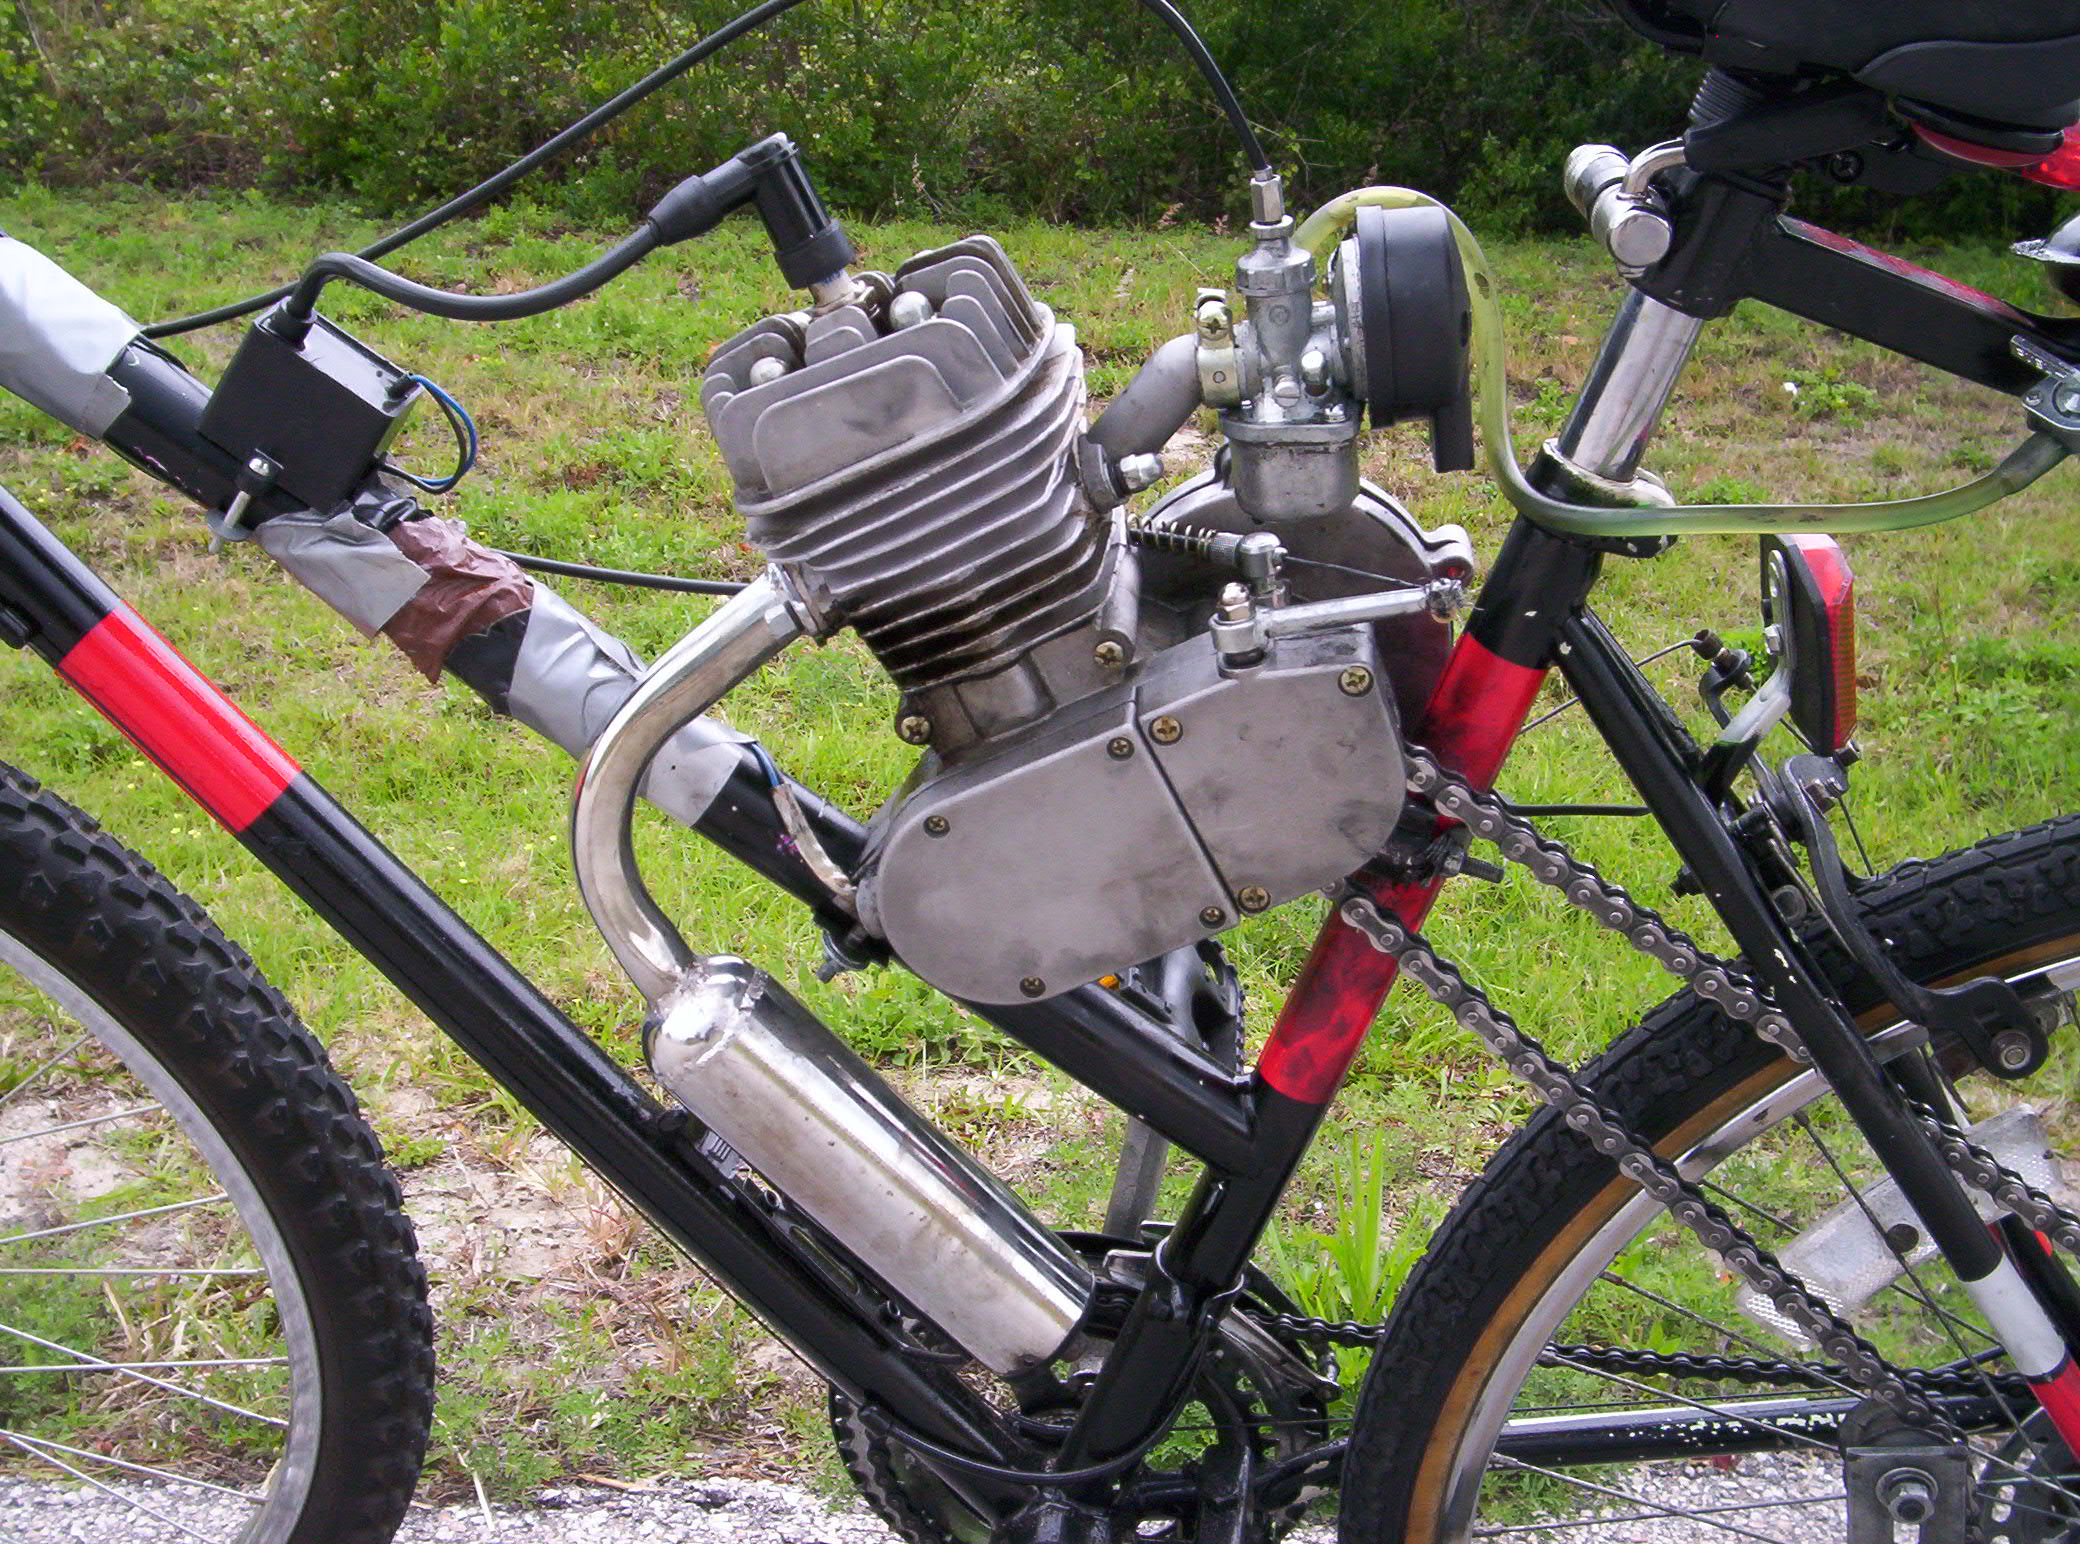 Bikes With Motor Speed motors were designed to